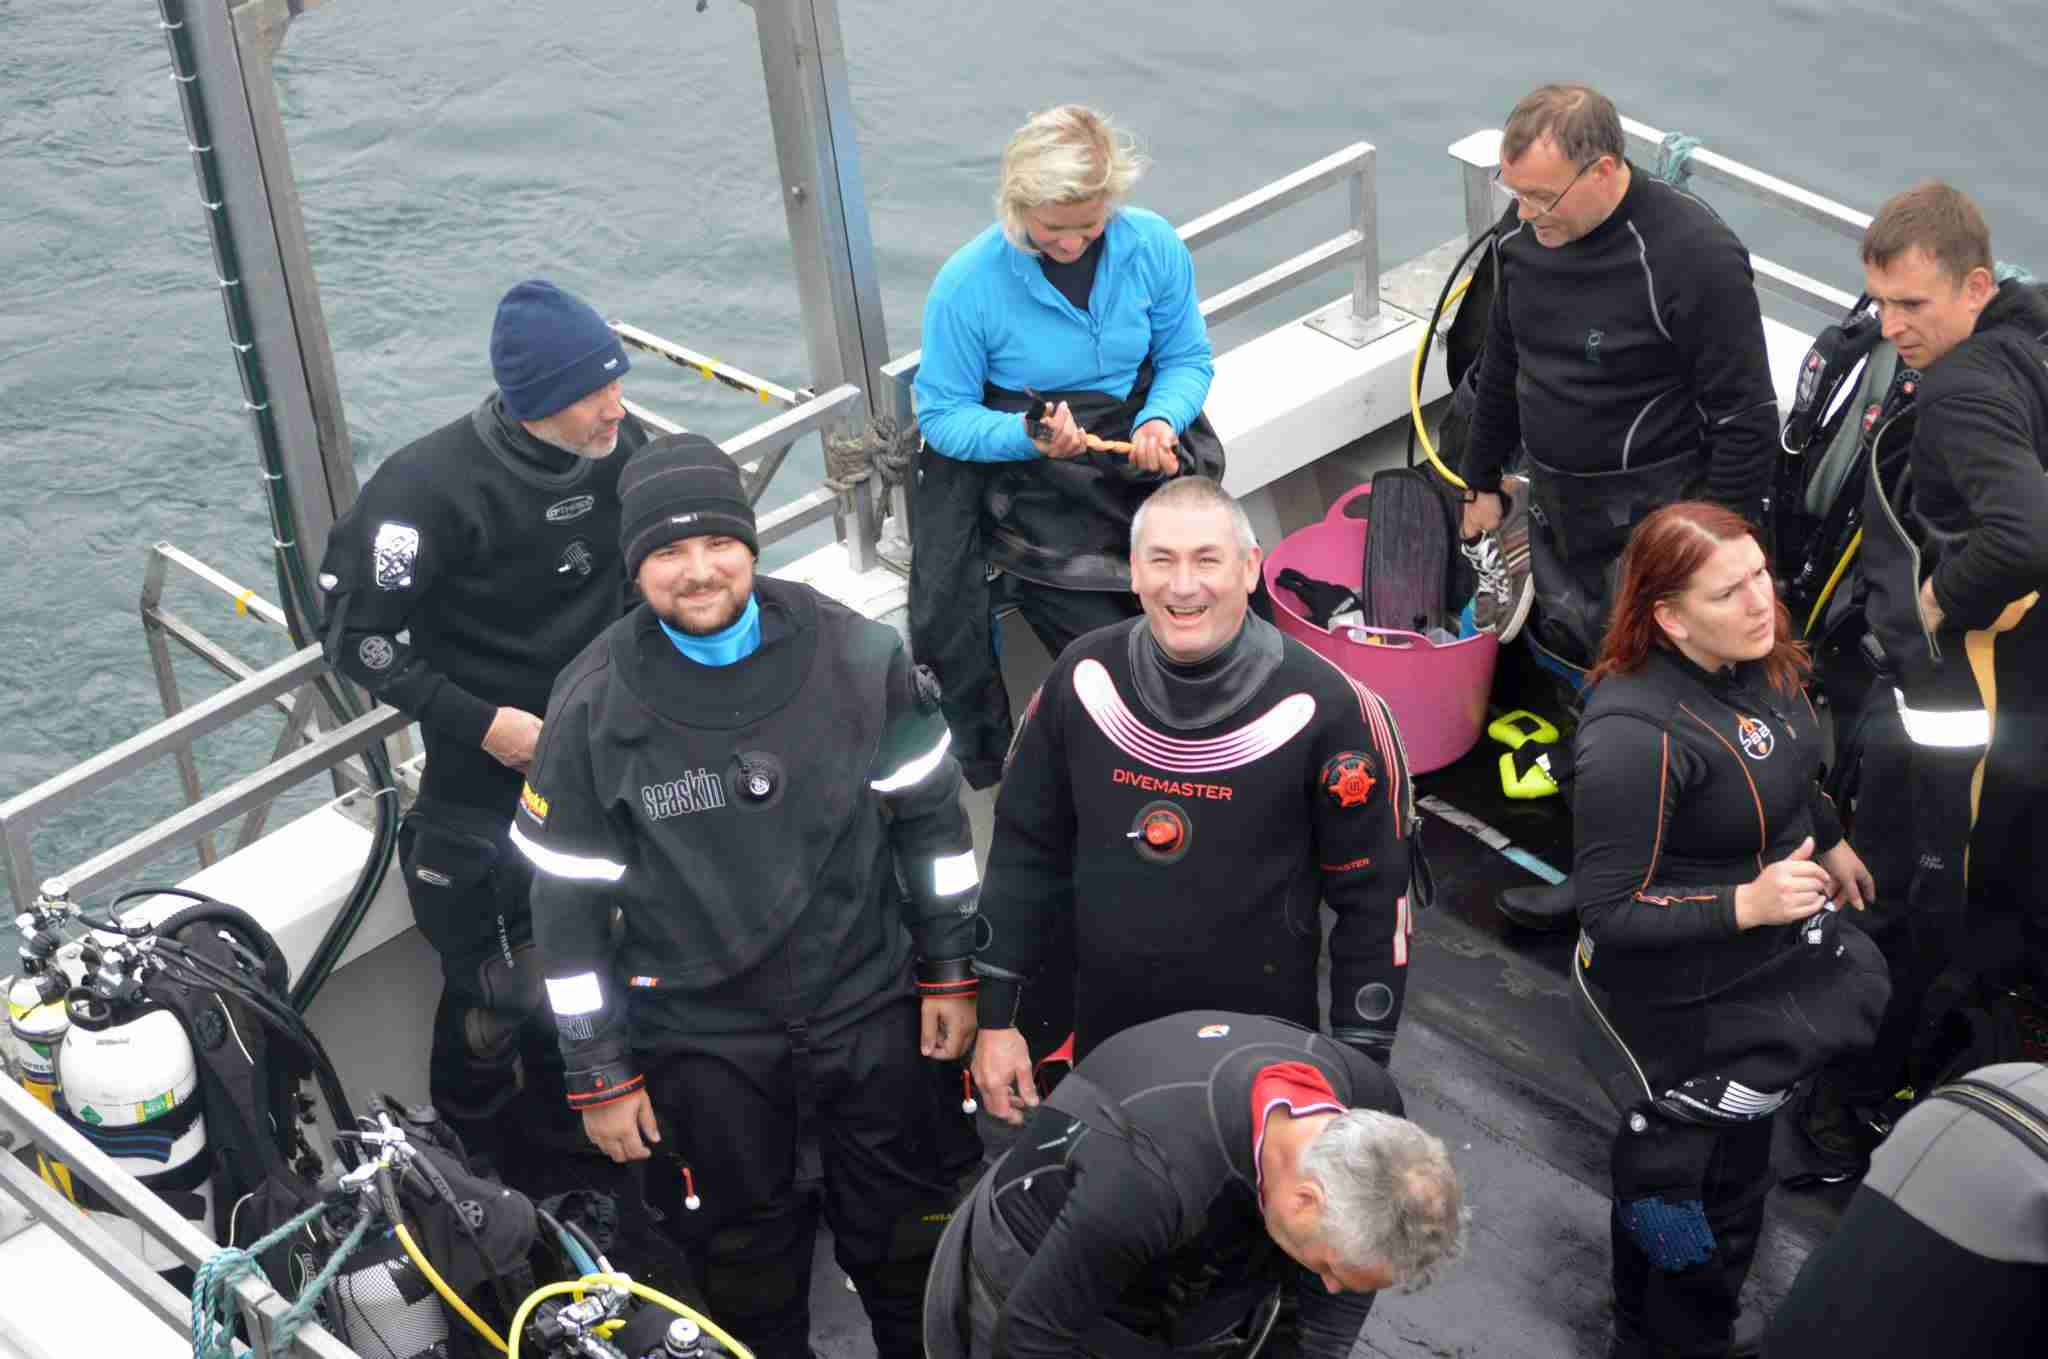 Divers waving on dive boat at Farne Islands